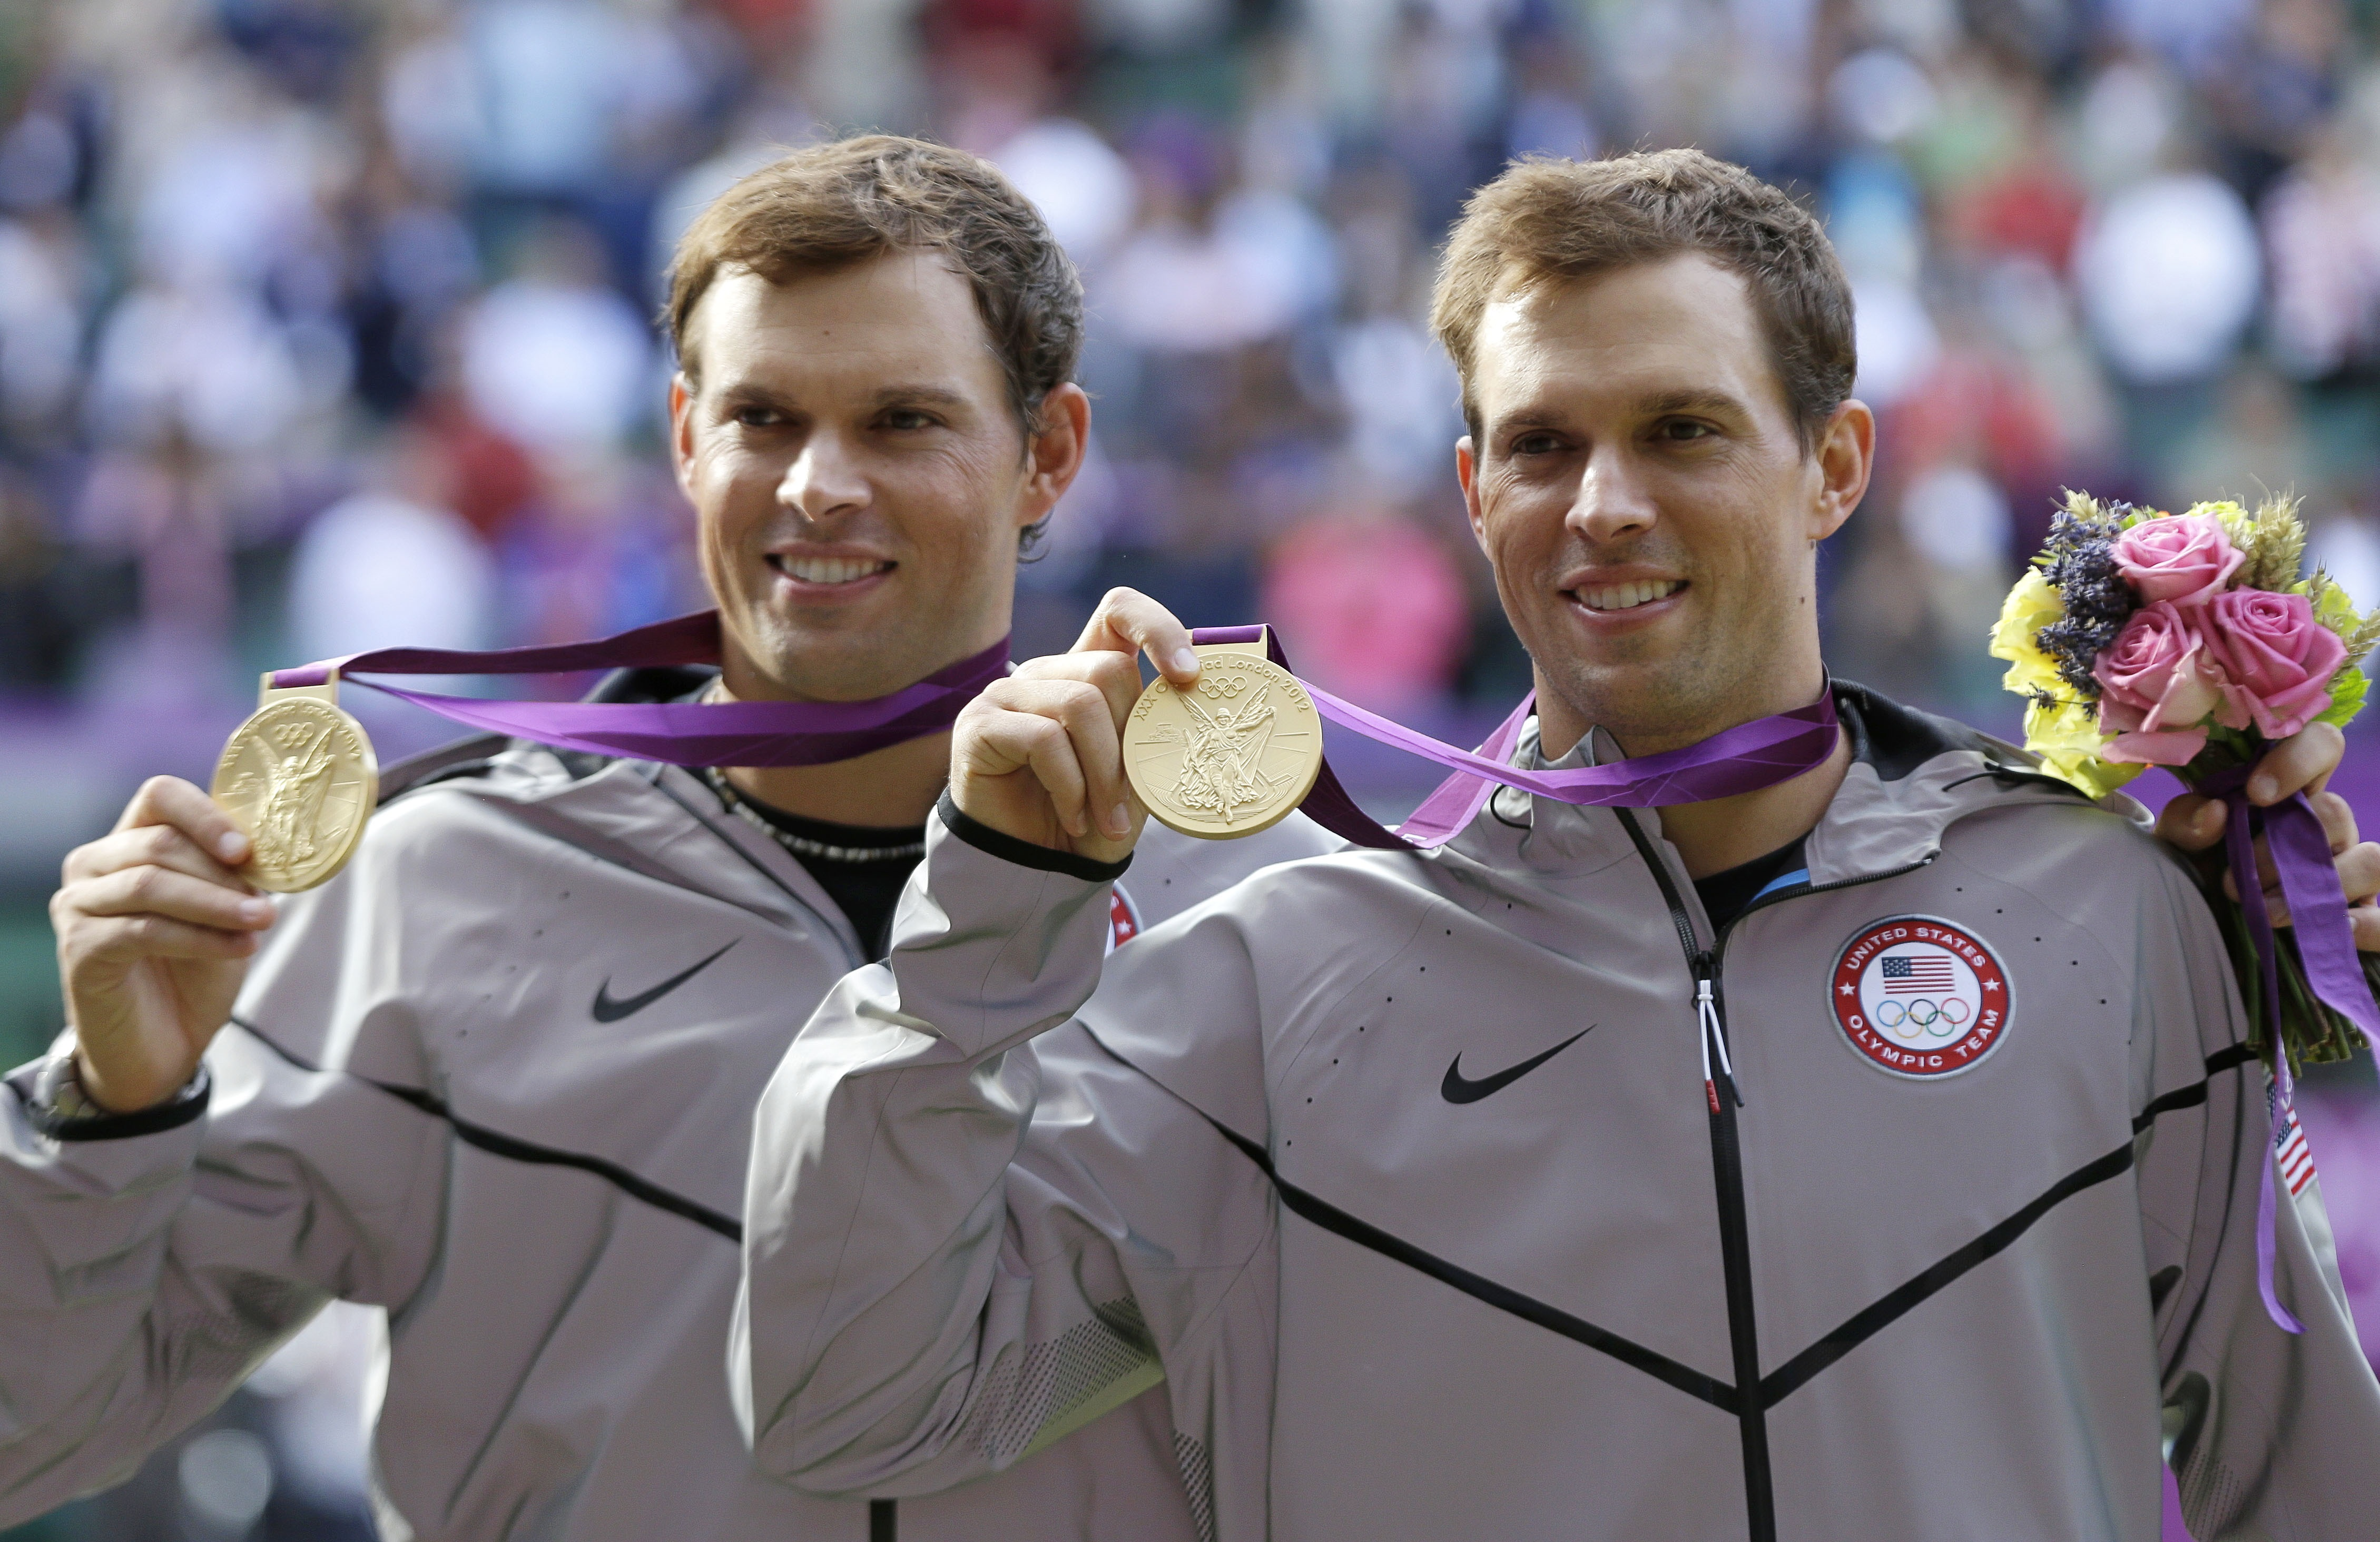 Gold medalists Mike Bryan, right, and Bob Bryan, left, of the United States, pose after the medal ceremony of the men's doubles final match at the All England Lawn Tennis Club at Wimbledon, in London, at the 2012 Summer Olympics, Saturday, Aug. 4, 2012. (